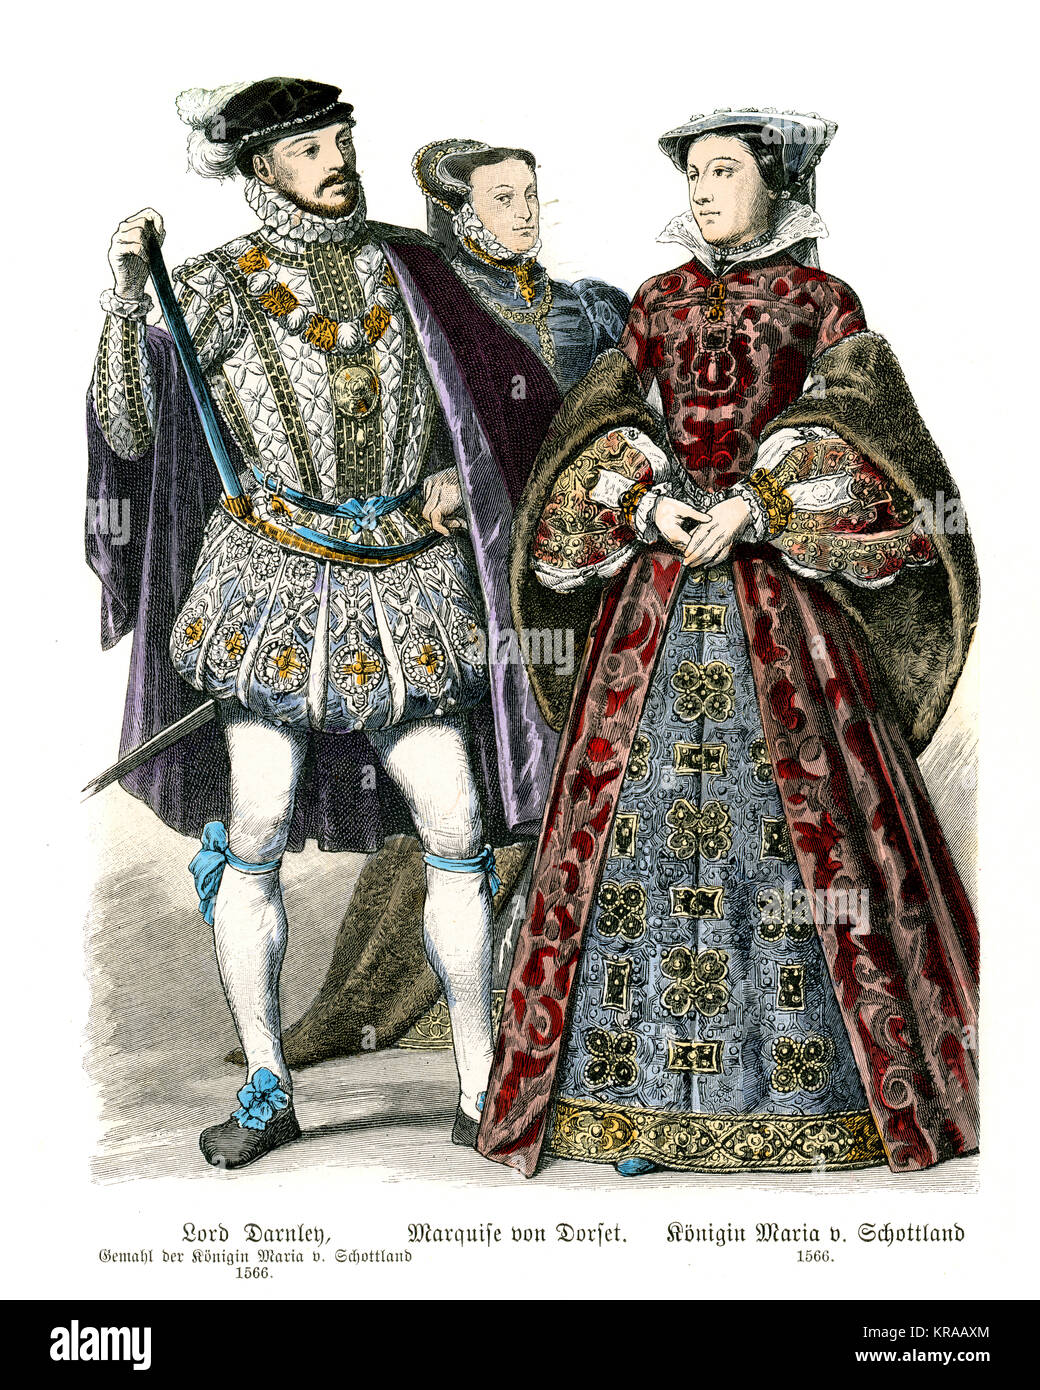 Fashions of the Tudor period. Henry Stuart, Lord Darnley, Mary Queen of Scots, Frances Grey, Duchess of Suffolk - Stock Image